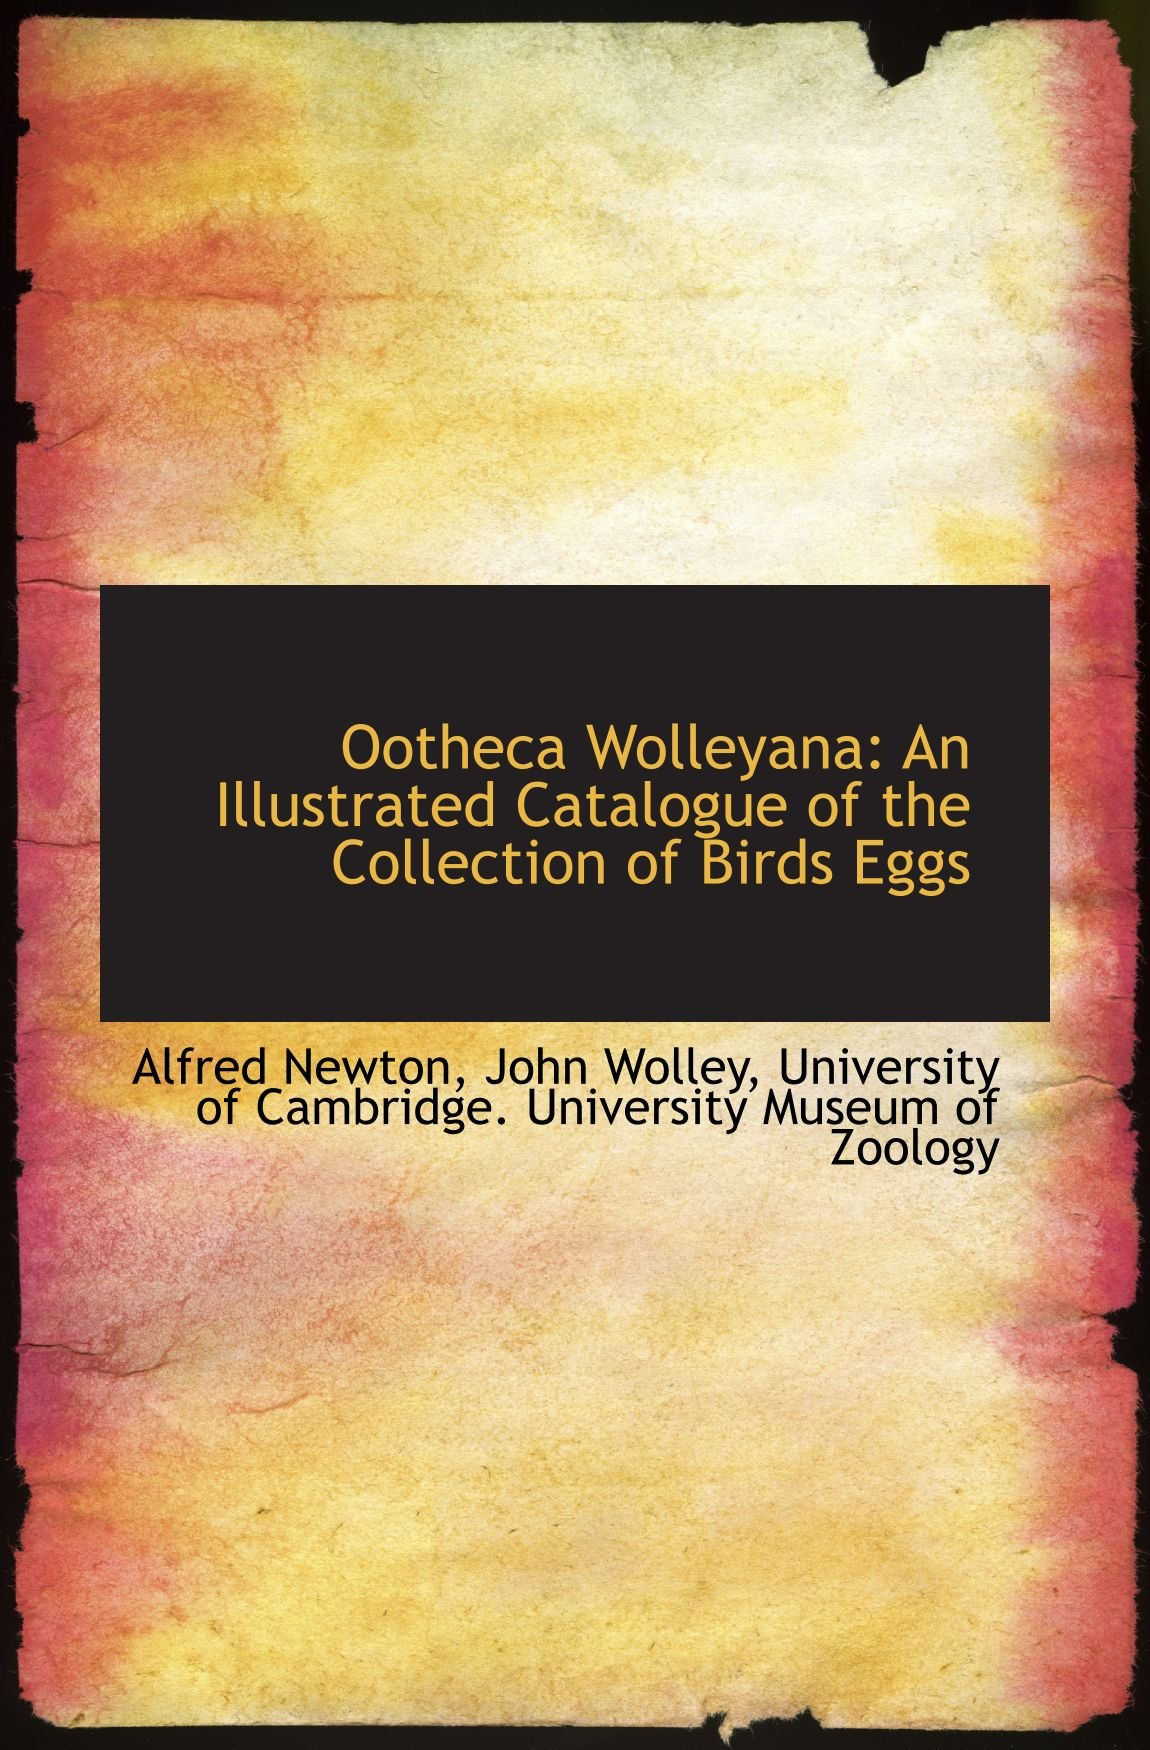 Download Ootheca Wolleyana: An Illustrated Catalogue of the Collection of Birds Eggs ebook